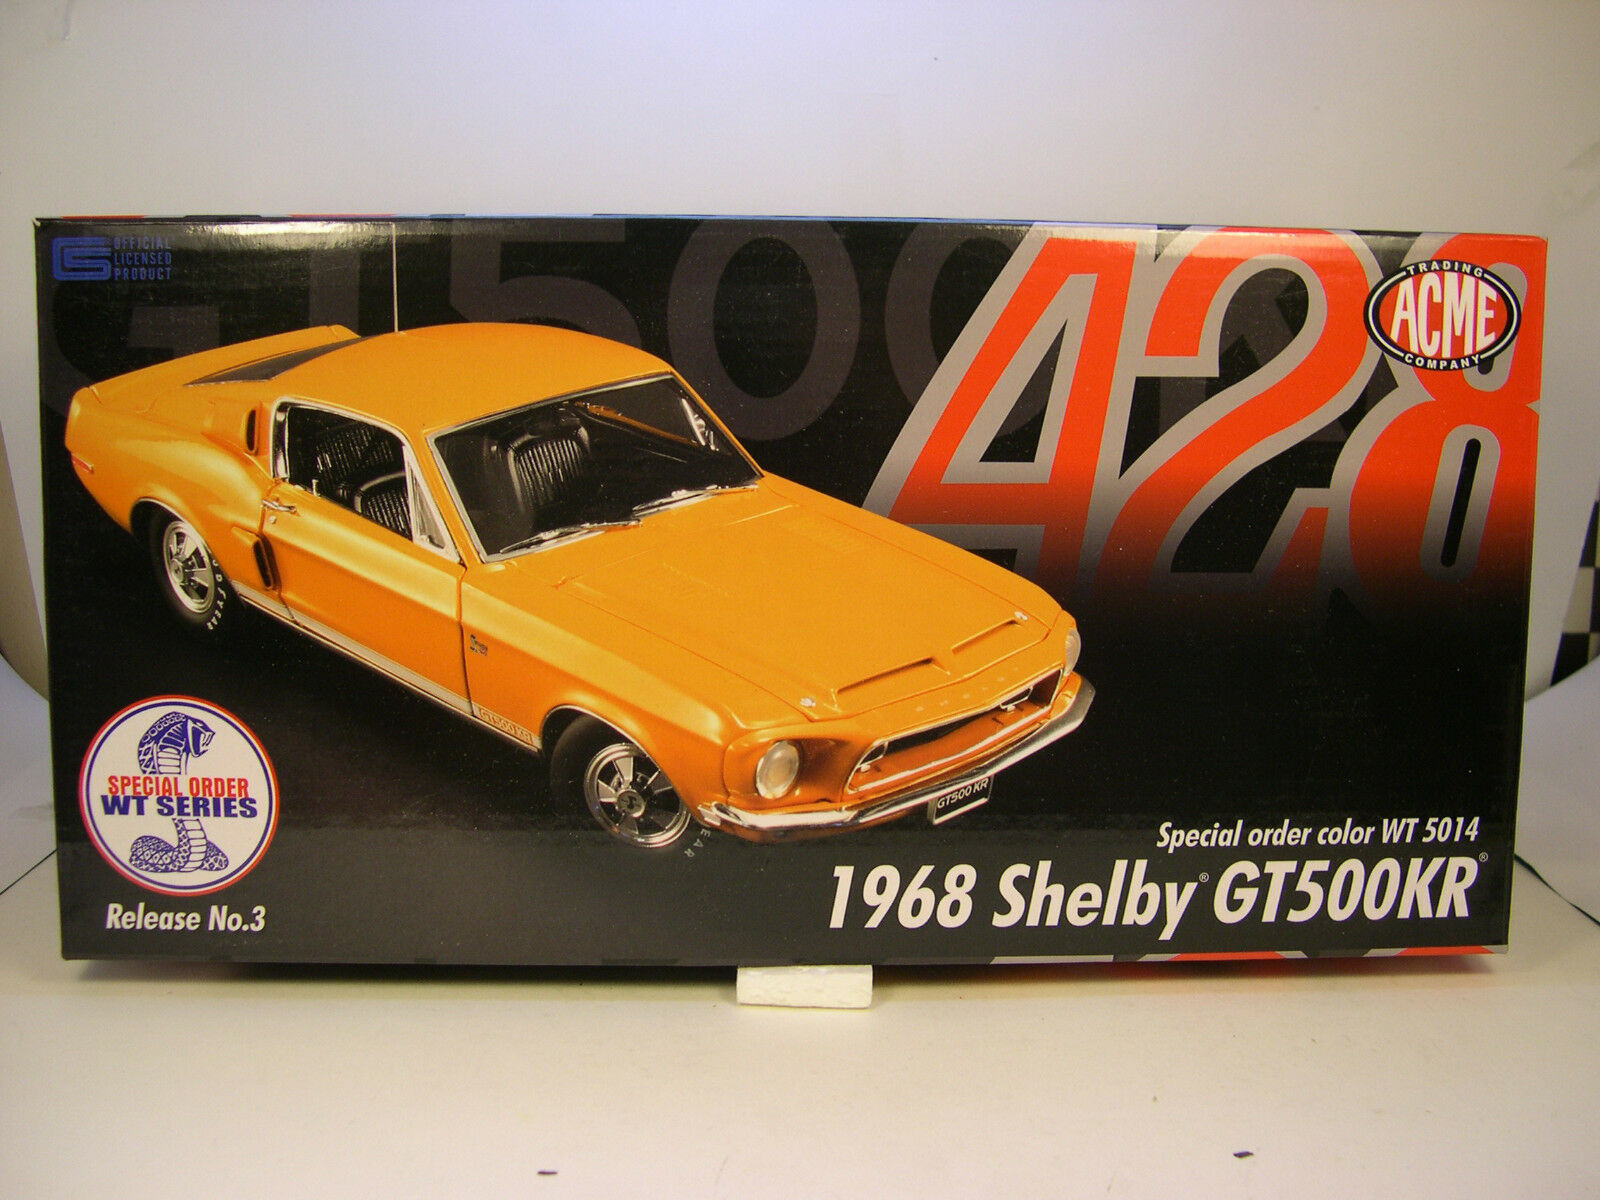 WT5014 naranja 1968 FORD SHELBY GT500KR MUSTANG ACME 1 18 SCALE DIECAST METAL CAR